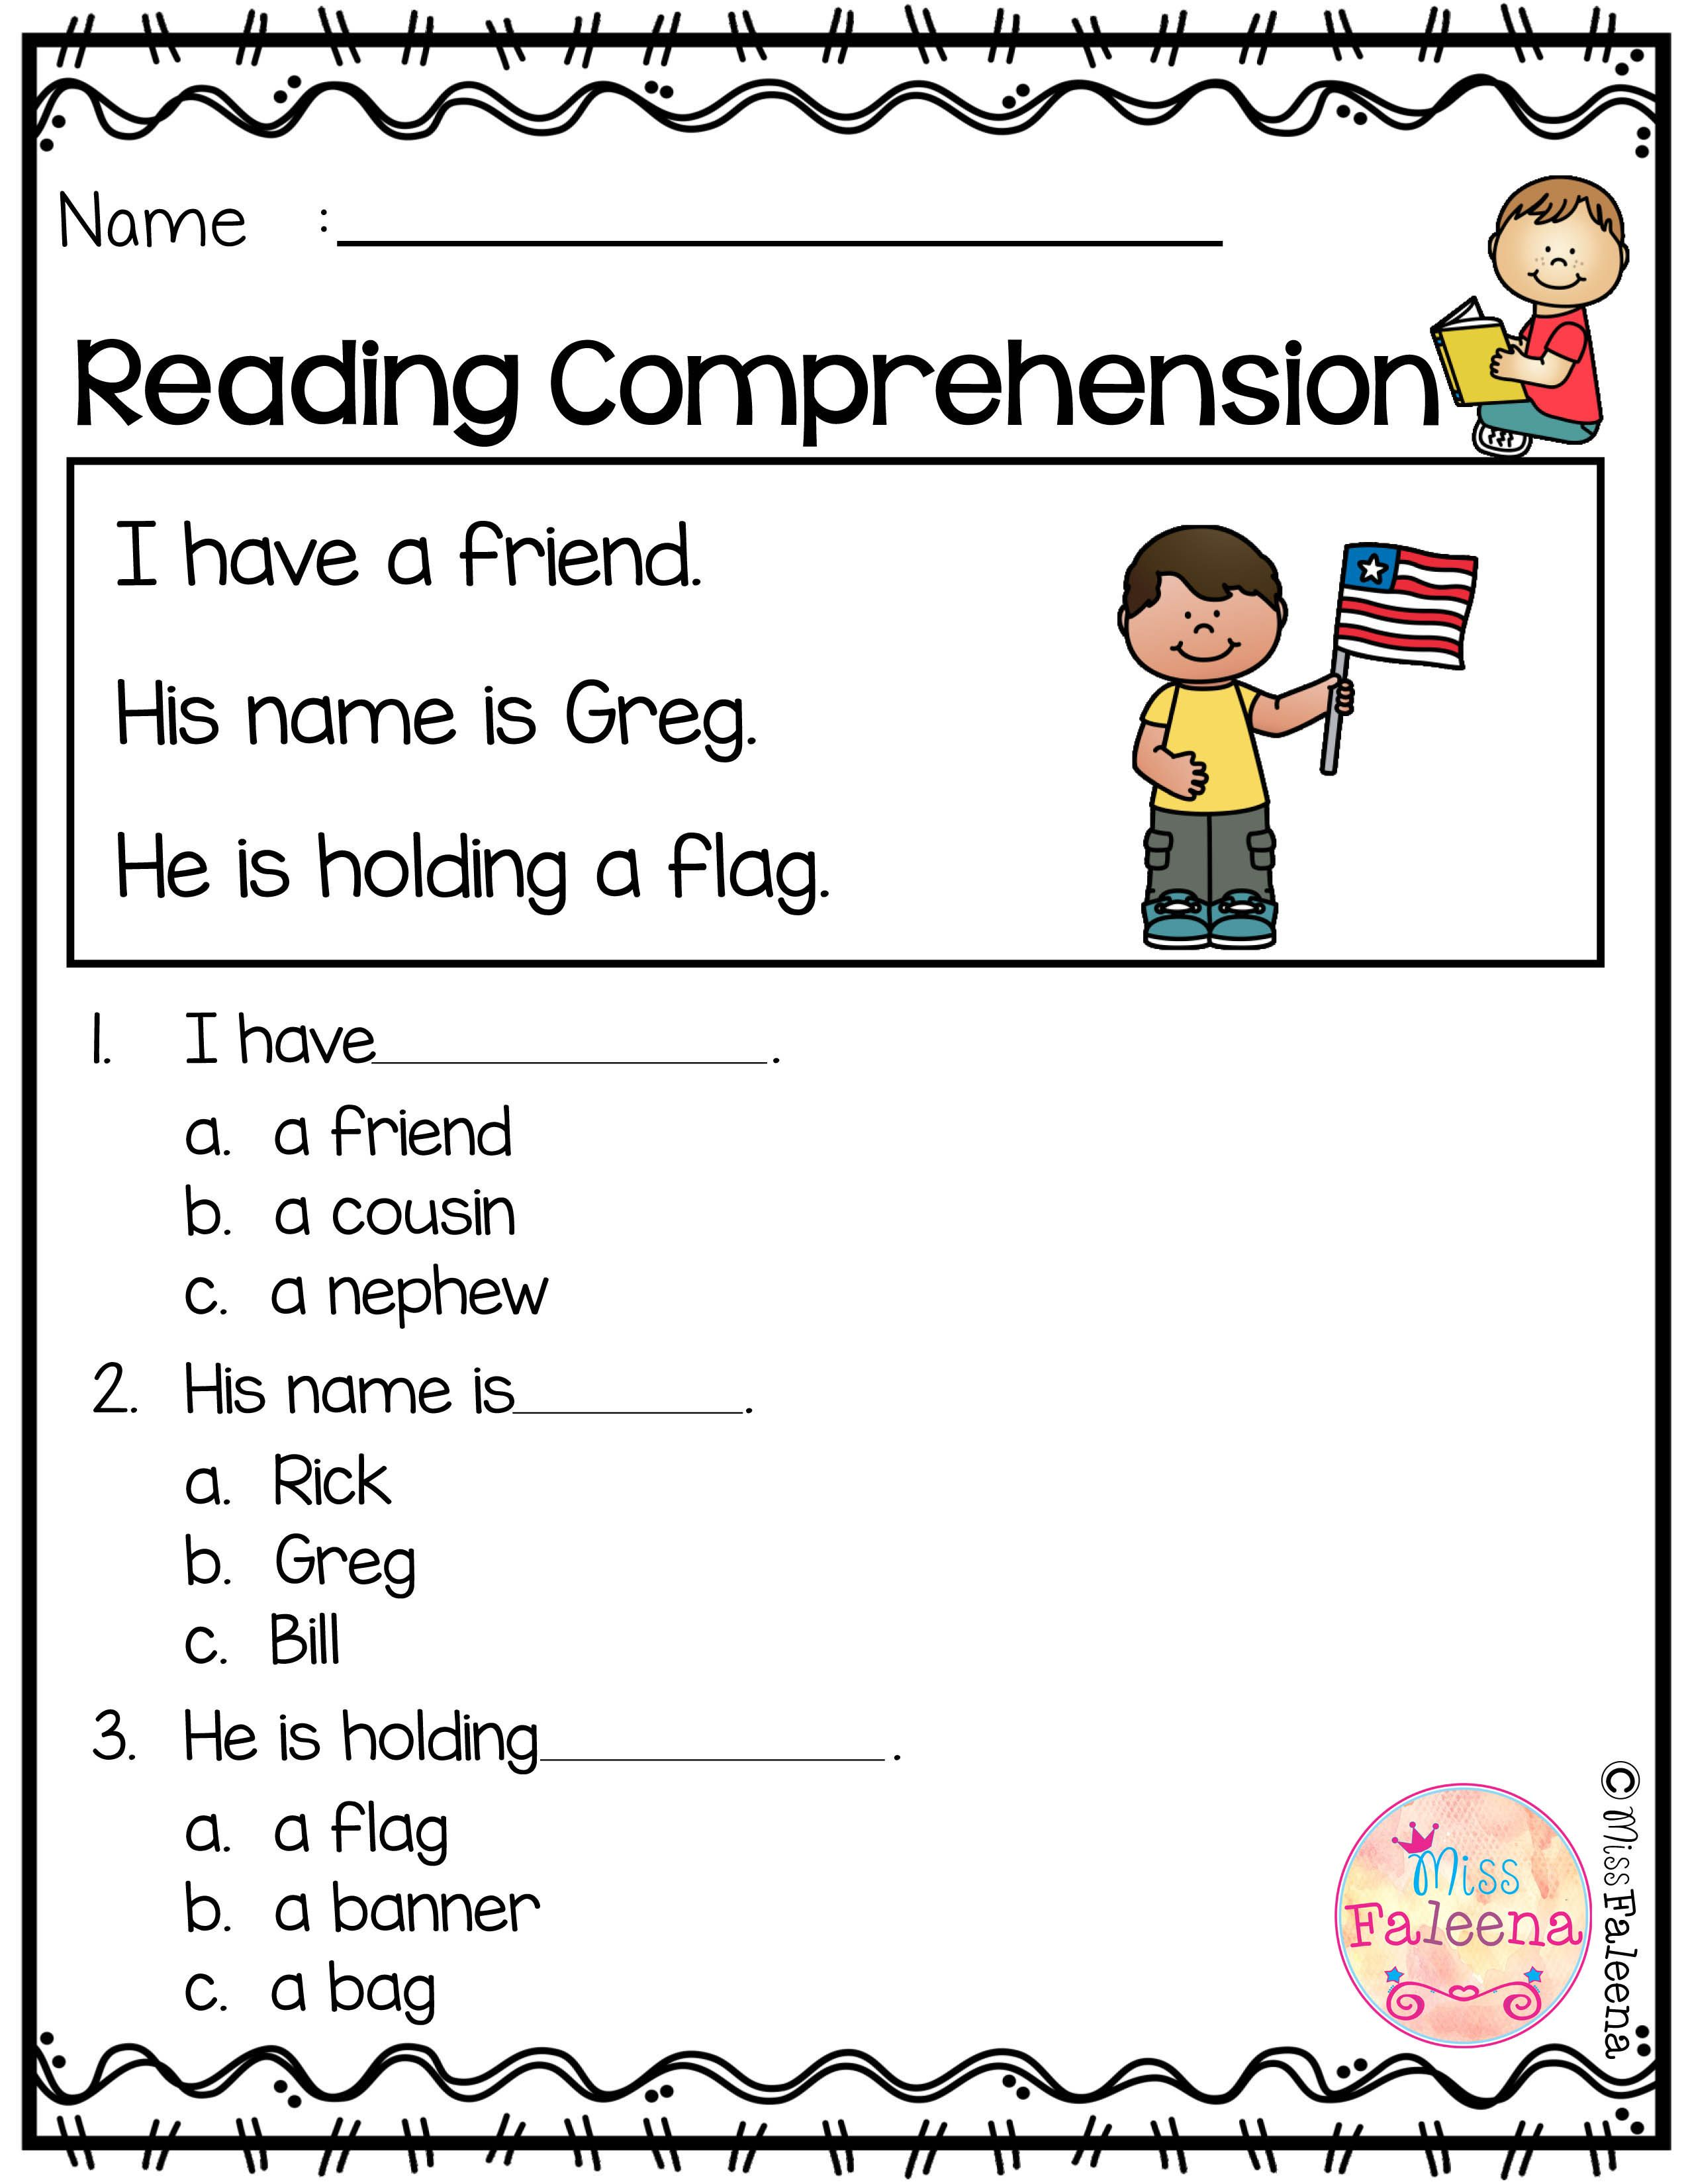 - Free Reading Comprehension (With Images) Reading Comprehension